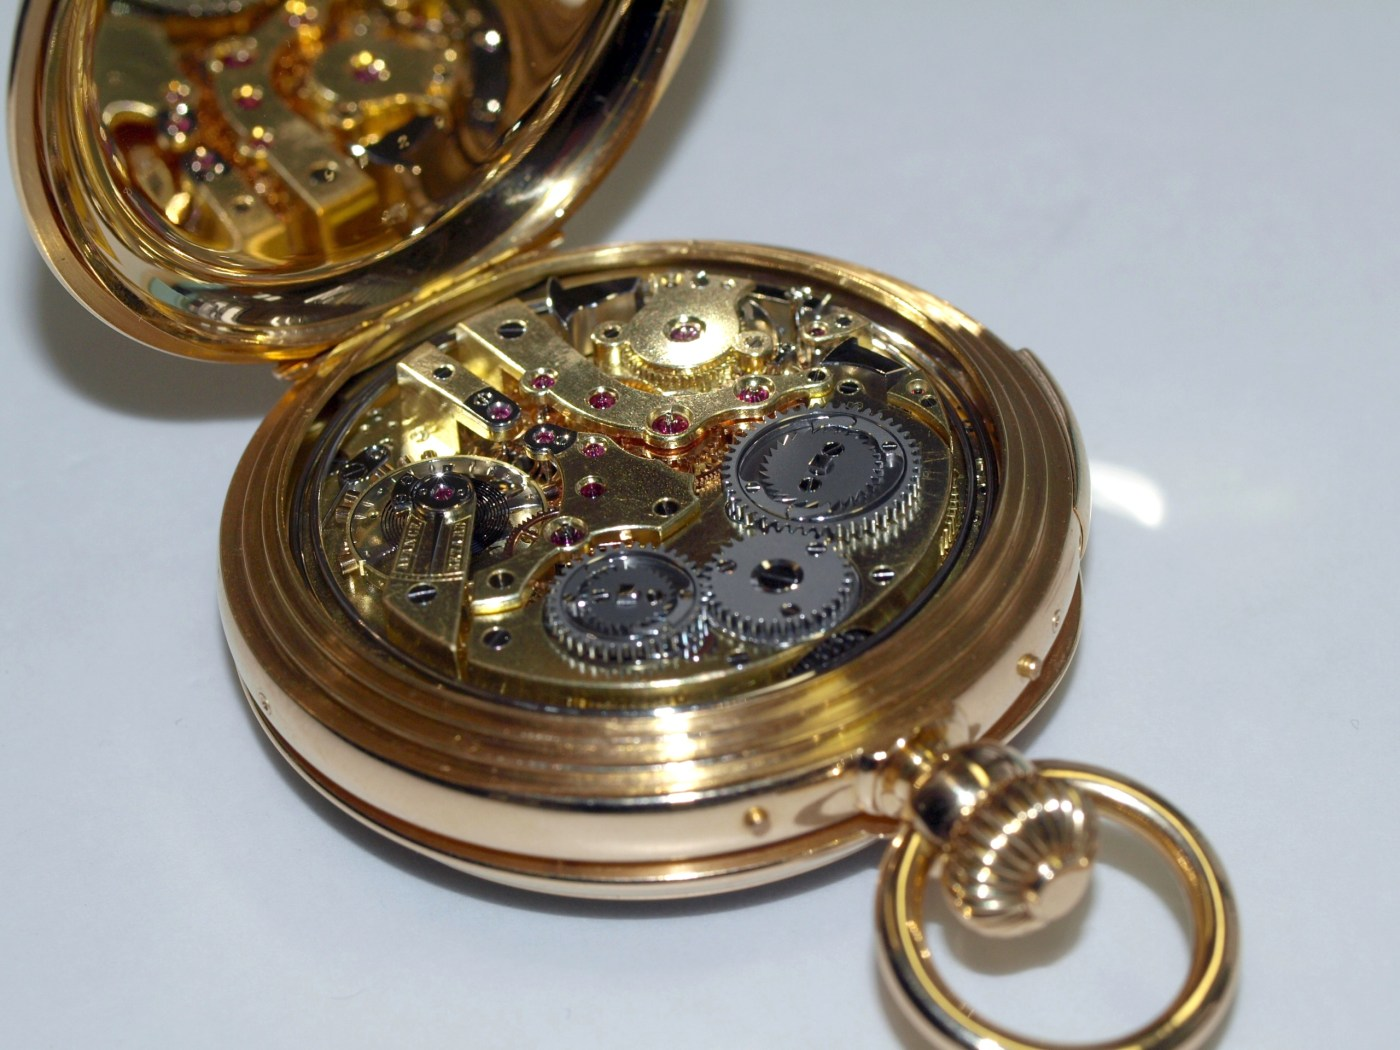 Grand Complication pocket watch in for service